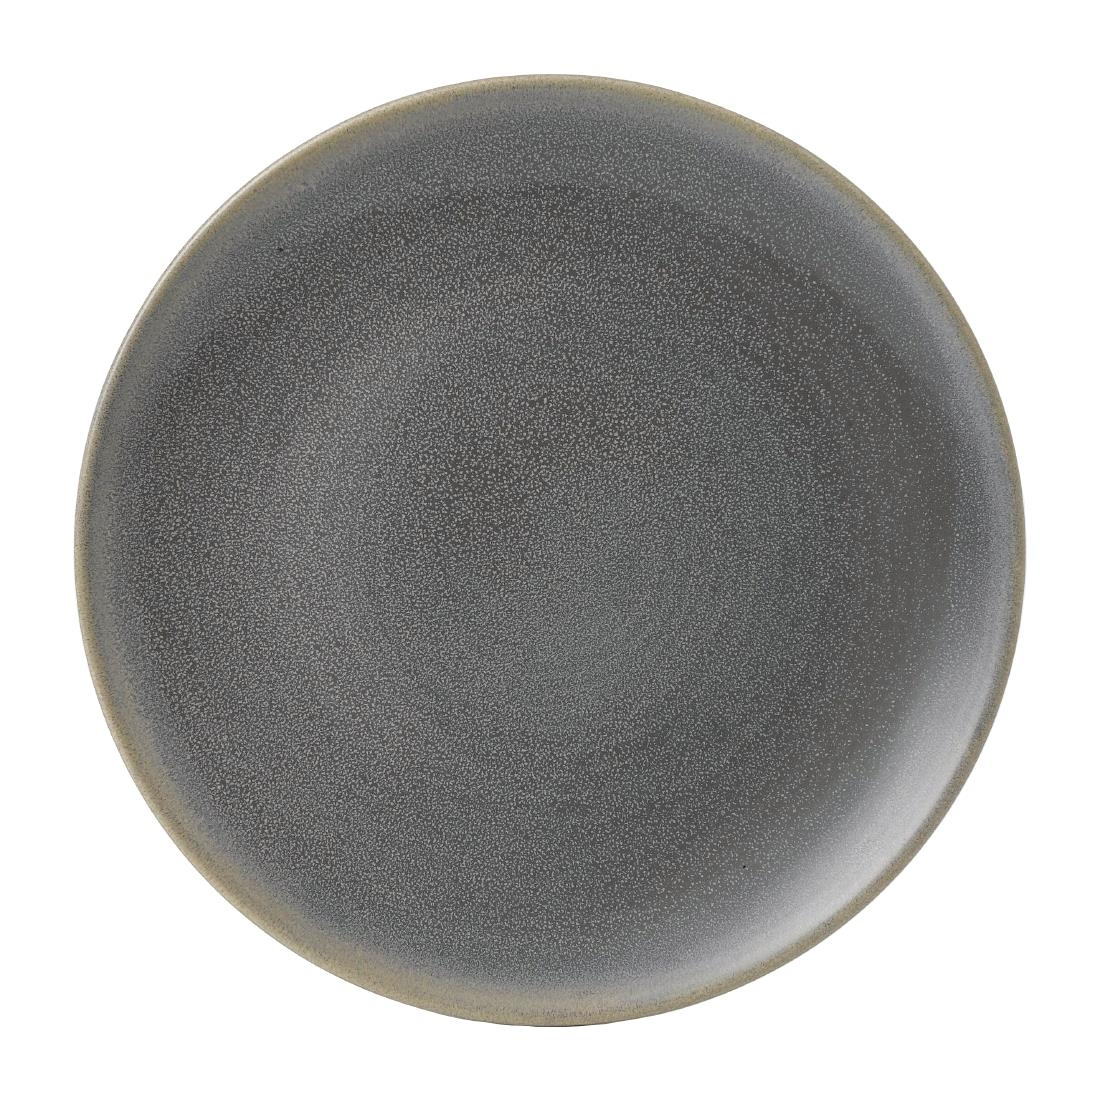 Image of Dudson Evo Granite Coupe Plate 273mm (Pack of 6) Pack of 6